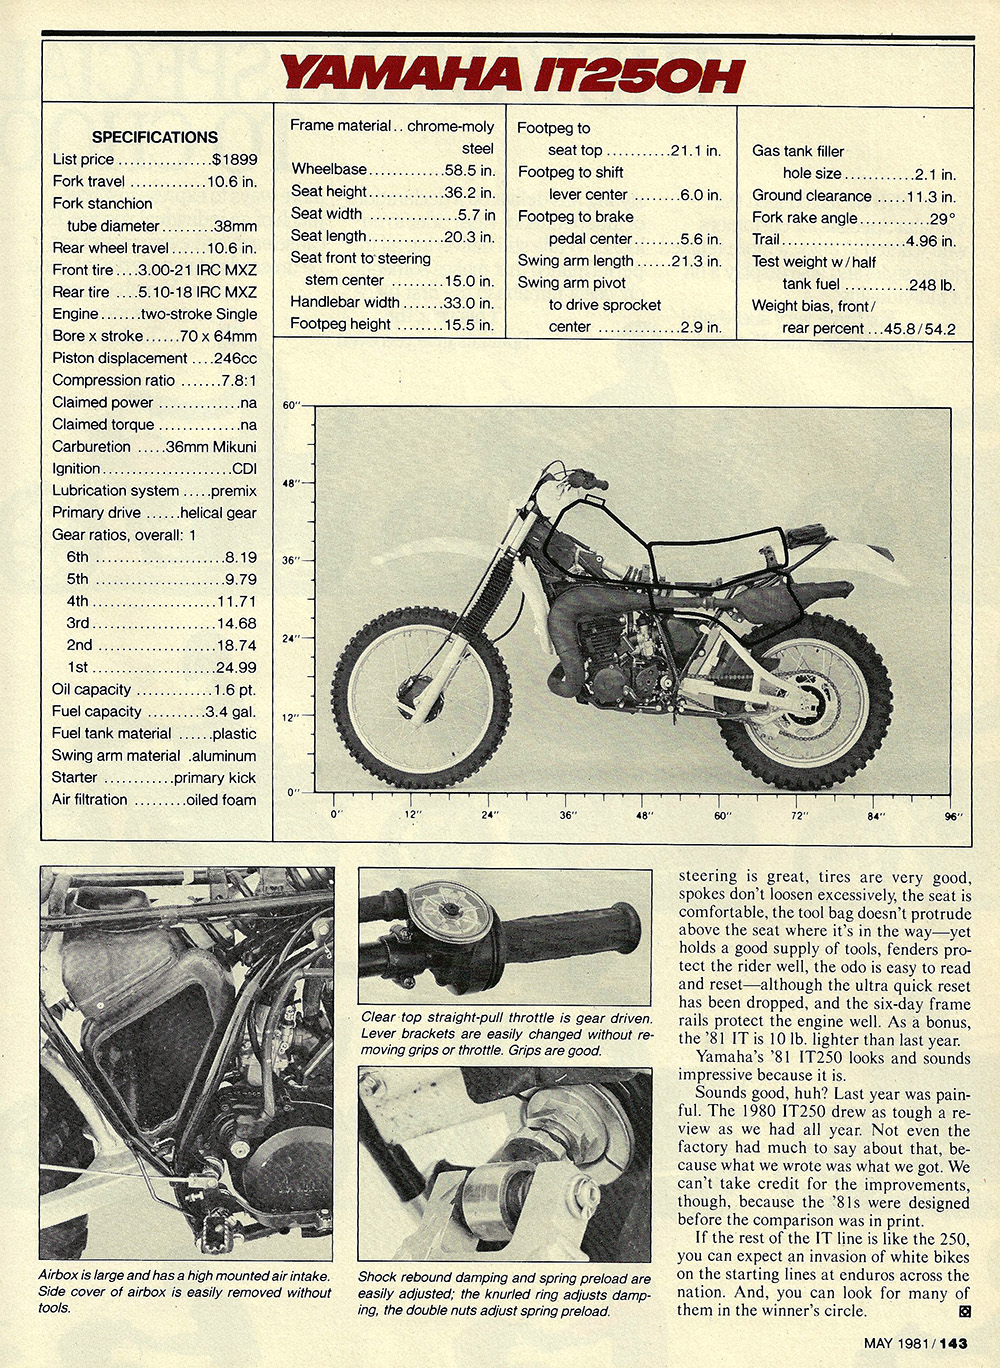 1981 Yamaha IT250H road test 06.jpg